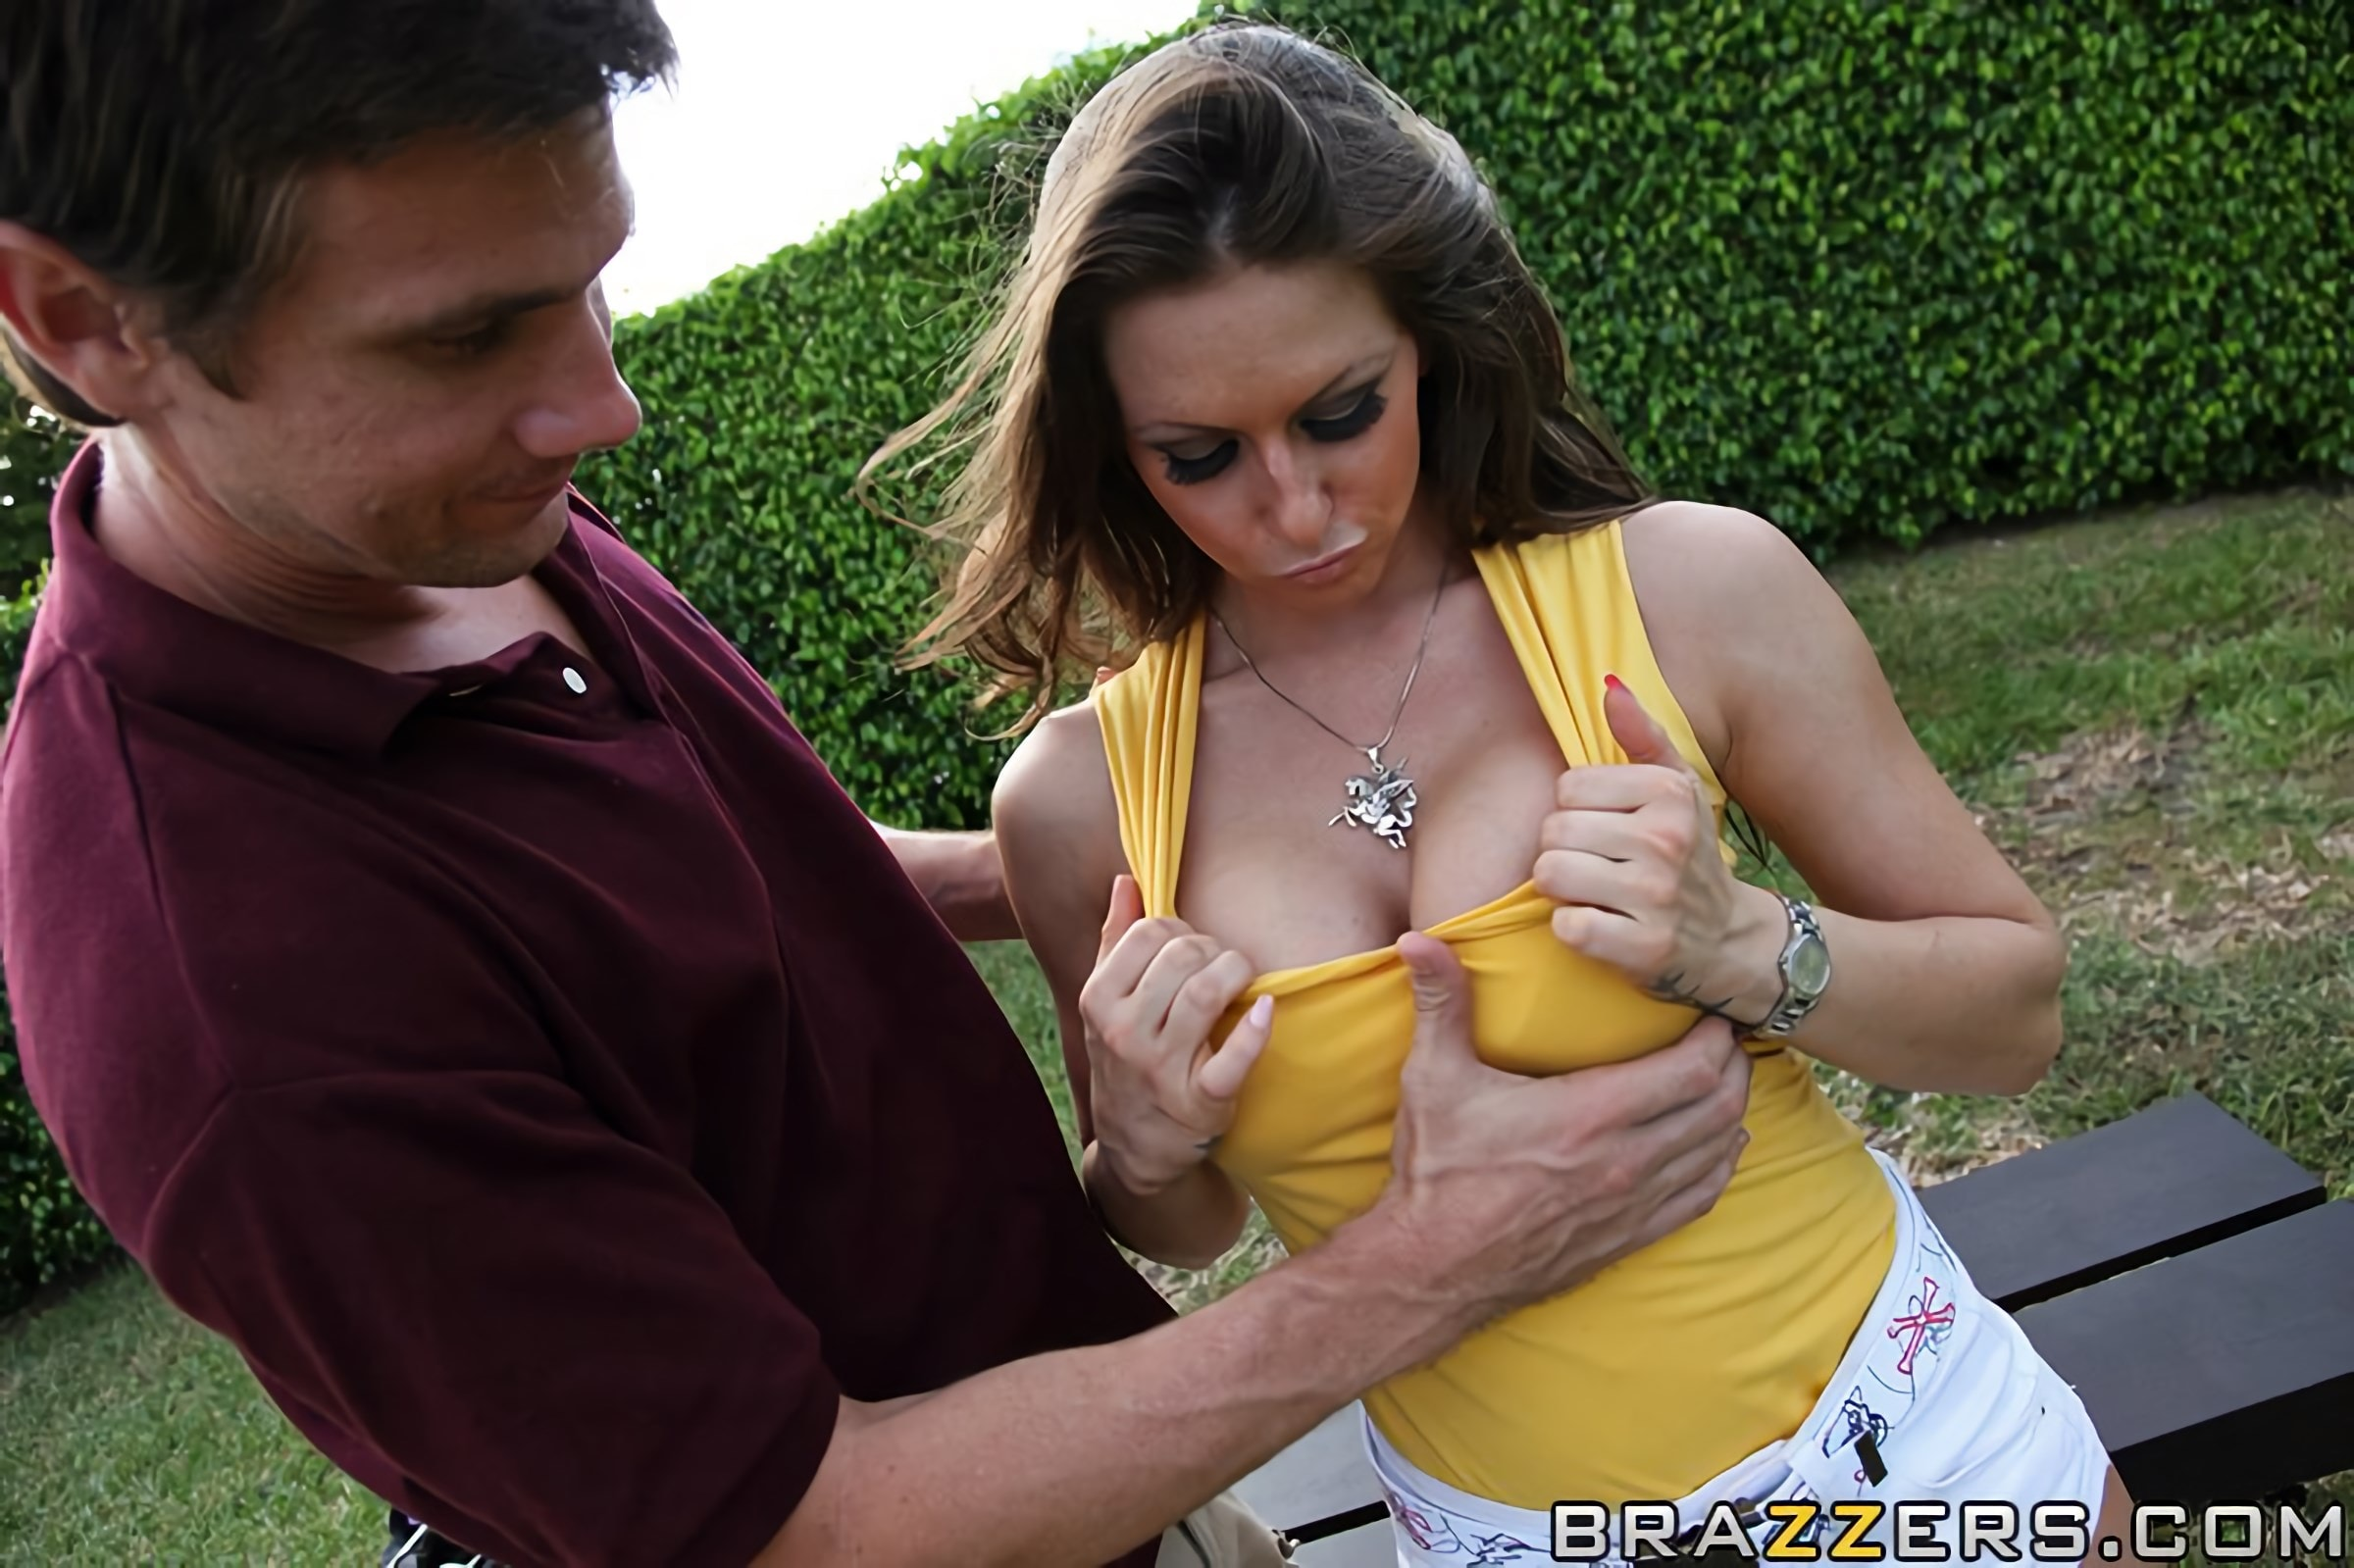 Brazzers 'A hole in one' starring Rachel Roxxx (Photo 7)